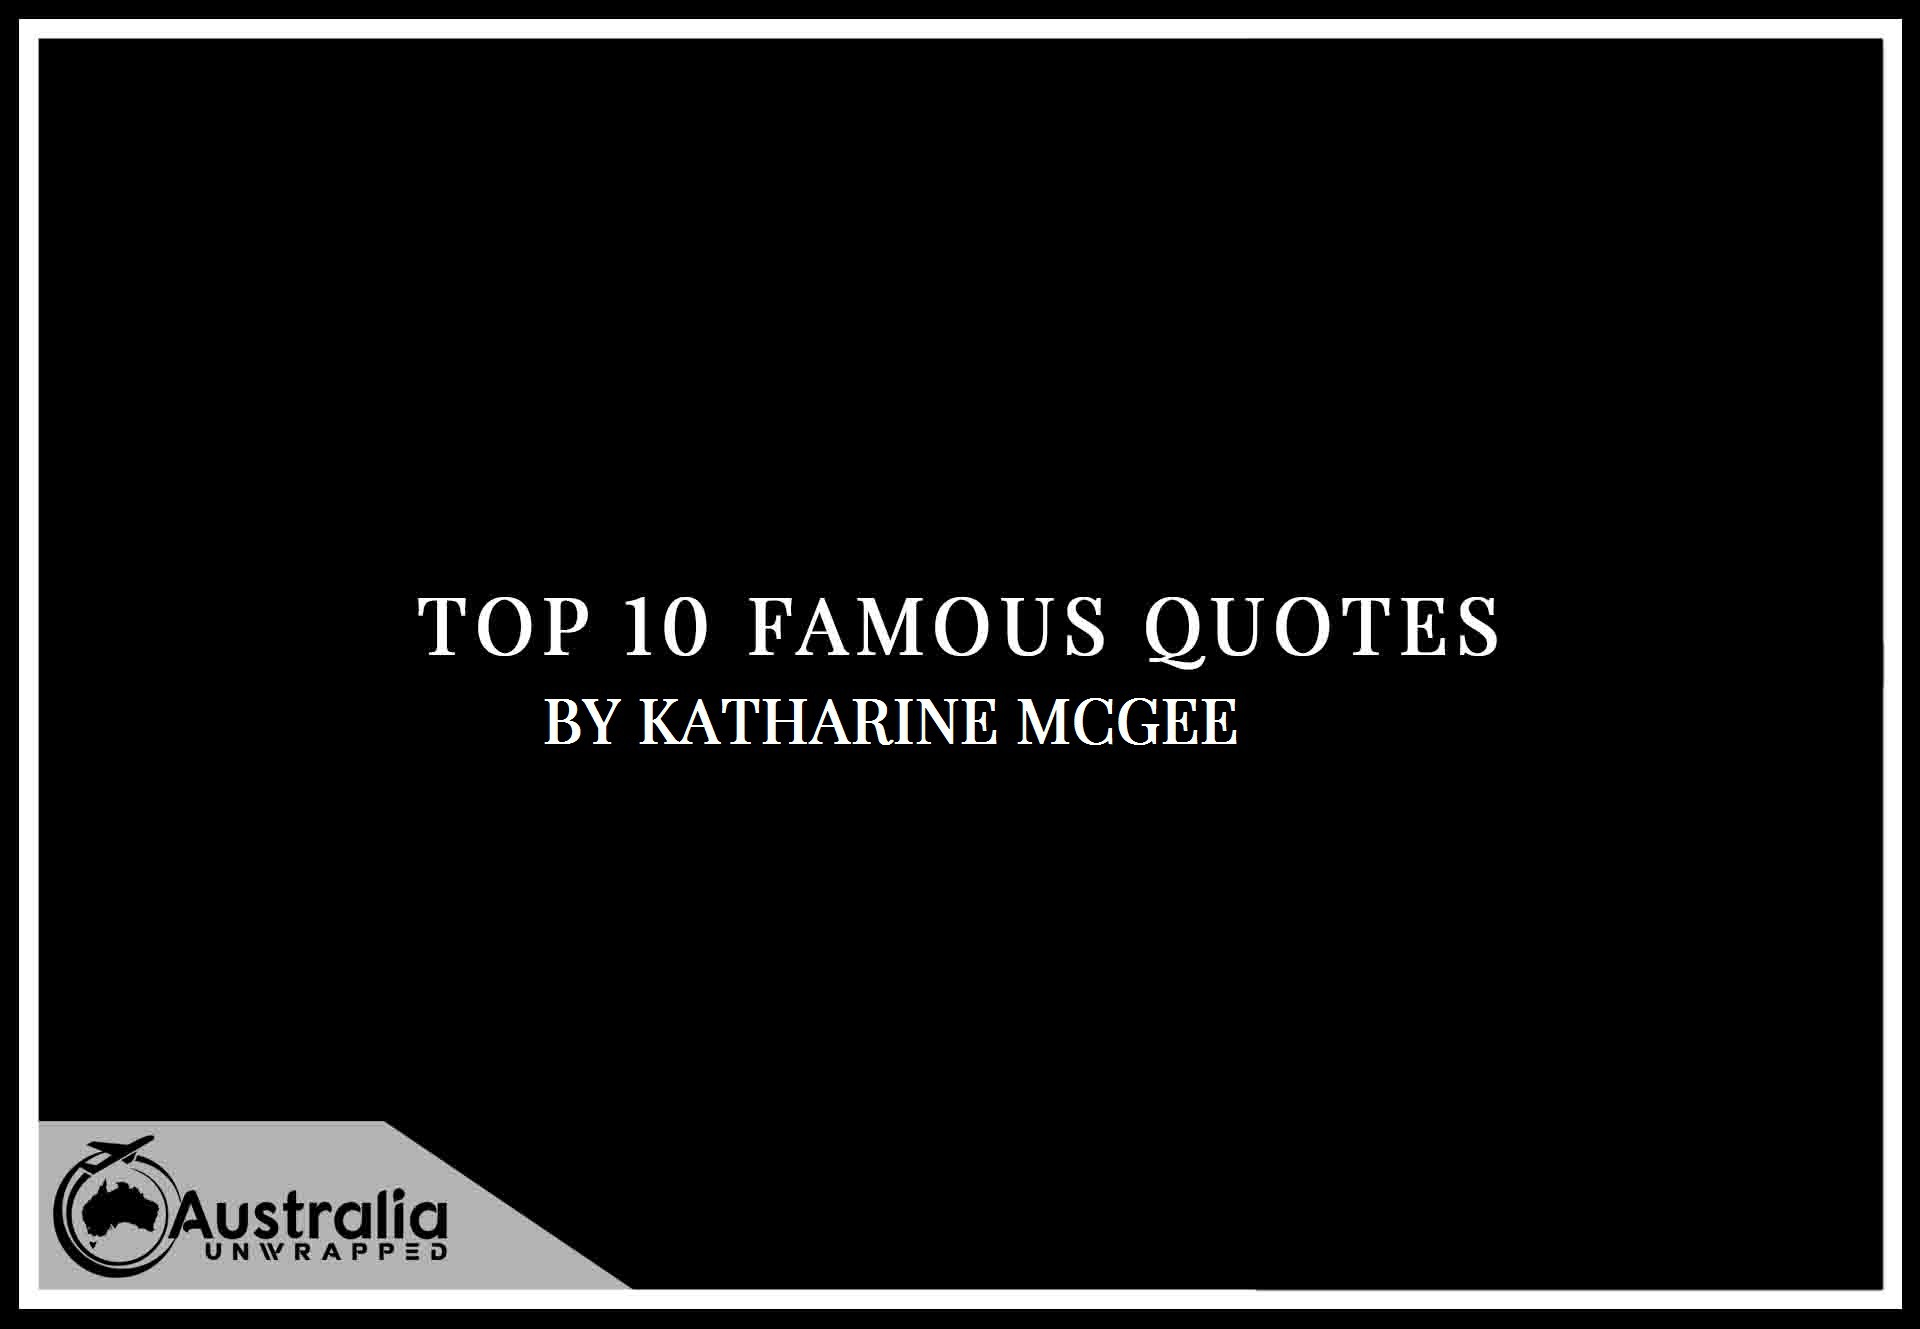 Katharine McGee's Top 10 Popular and Famous Quotes